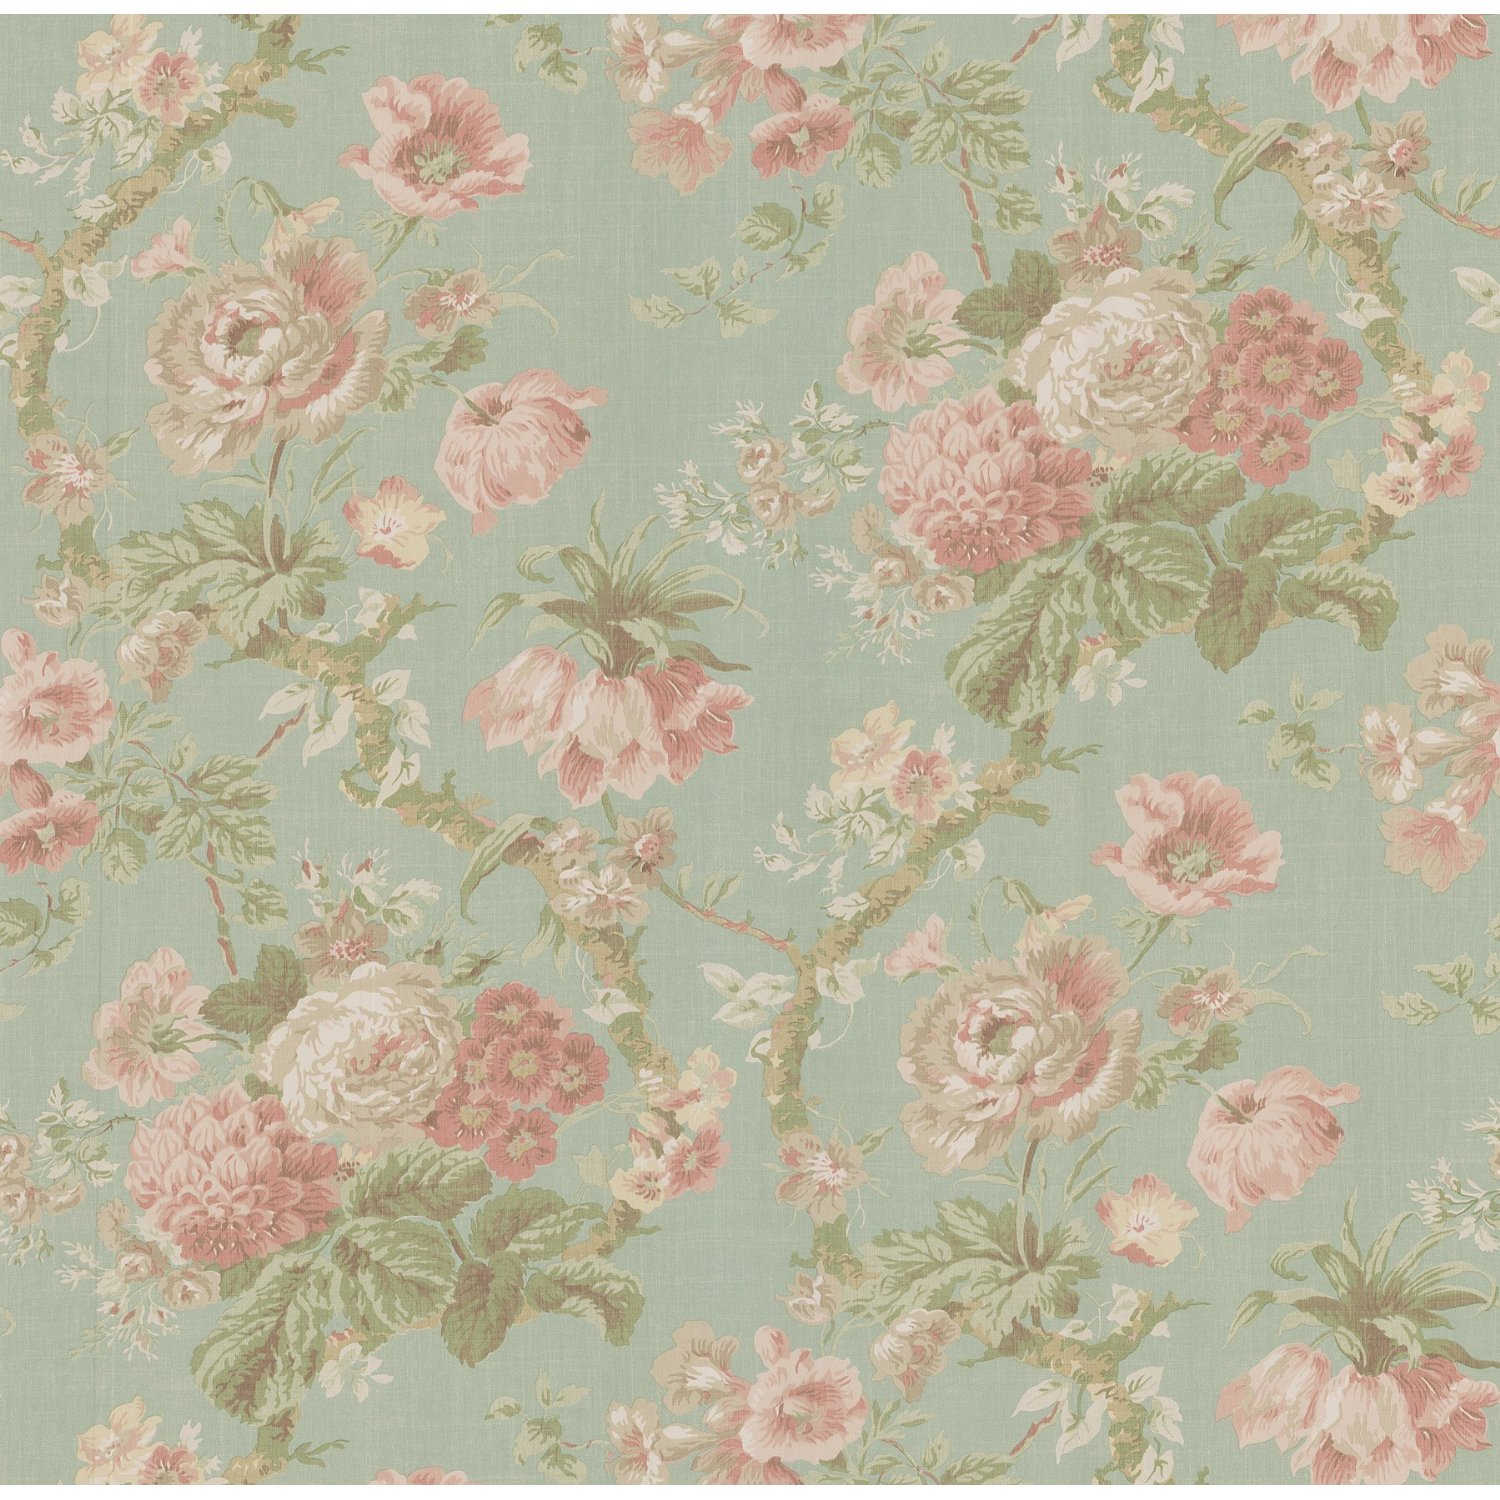 Old Paper Wallpaper: La Fleur Vintage: Floral Wallpaper